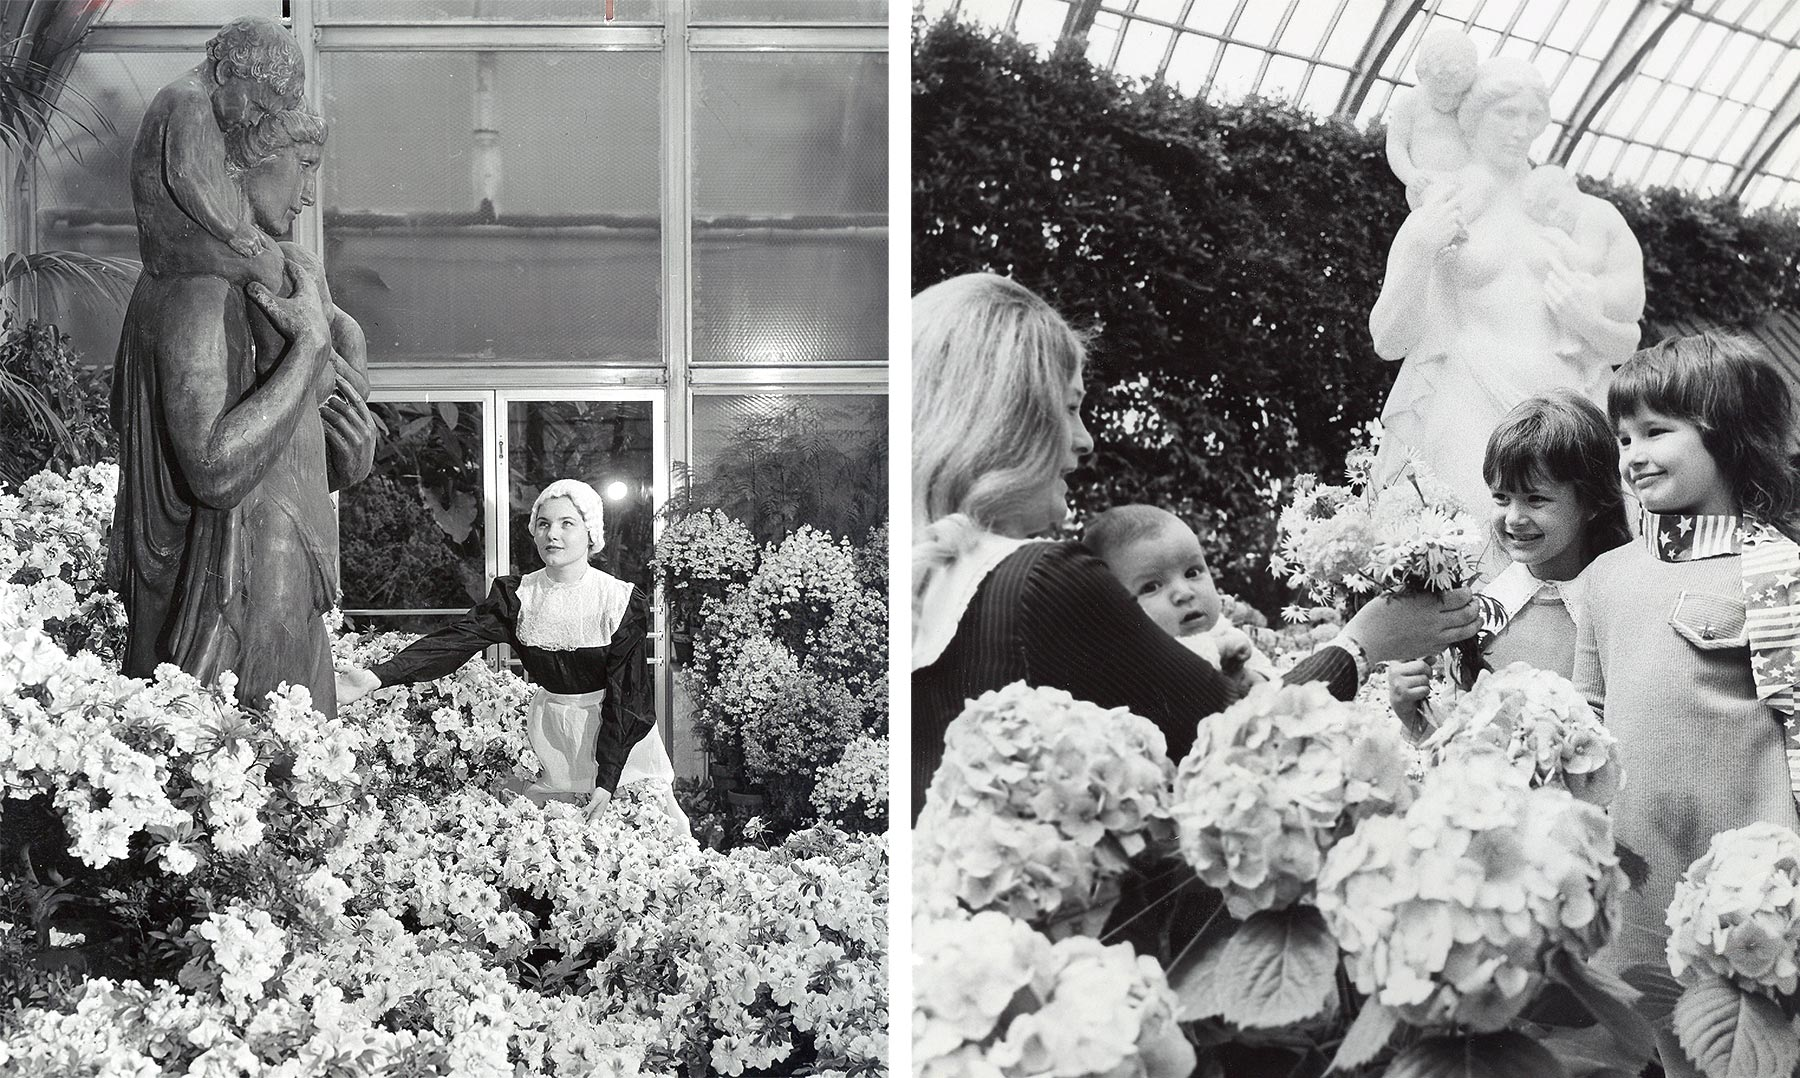 These photographs show  Charitas  in its second and third locations, in Lincoln Park in 1953 (L) and the Garfield Park Conservatory in the 1970s (R). Chicago Public Library Special Collections, Chicago Park District Archives, Photos.